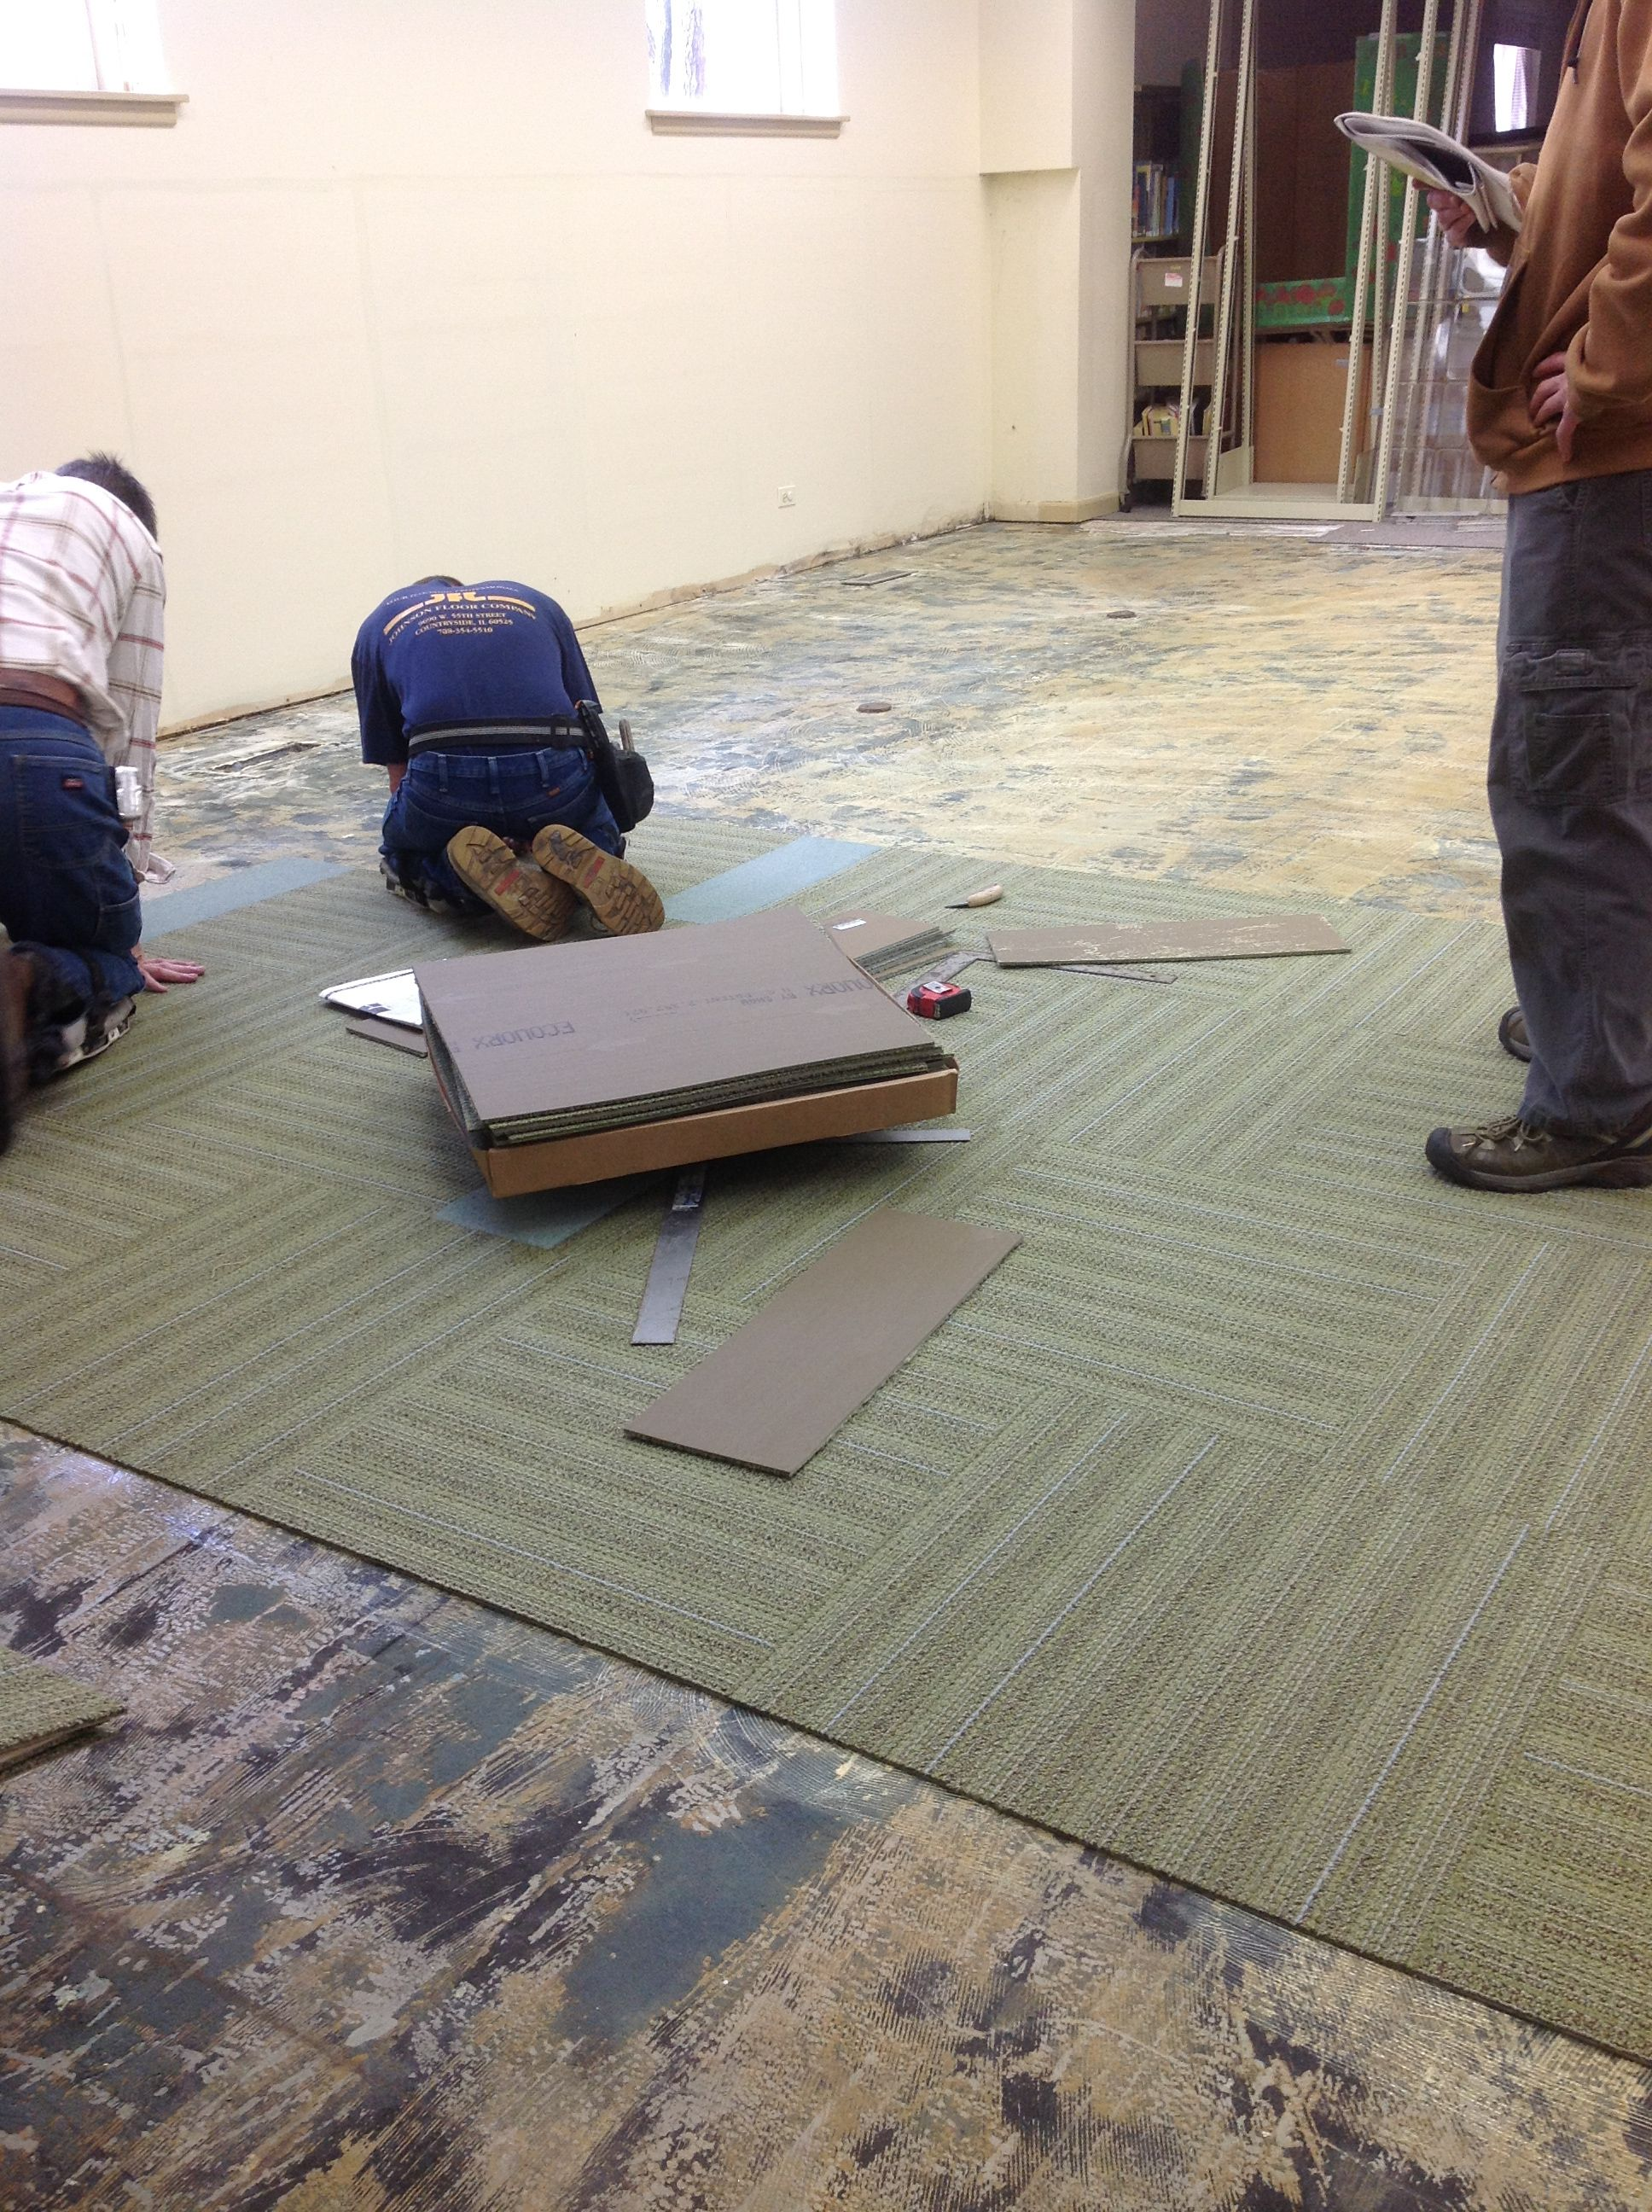 50 Laying Down The New Carpet In The Children39s